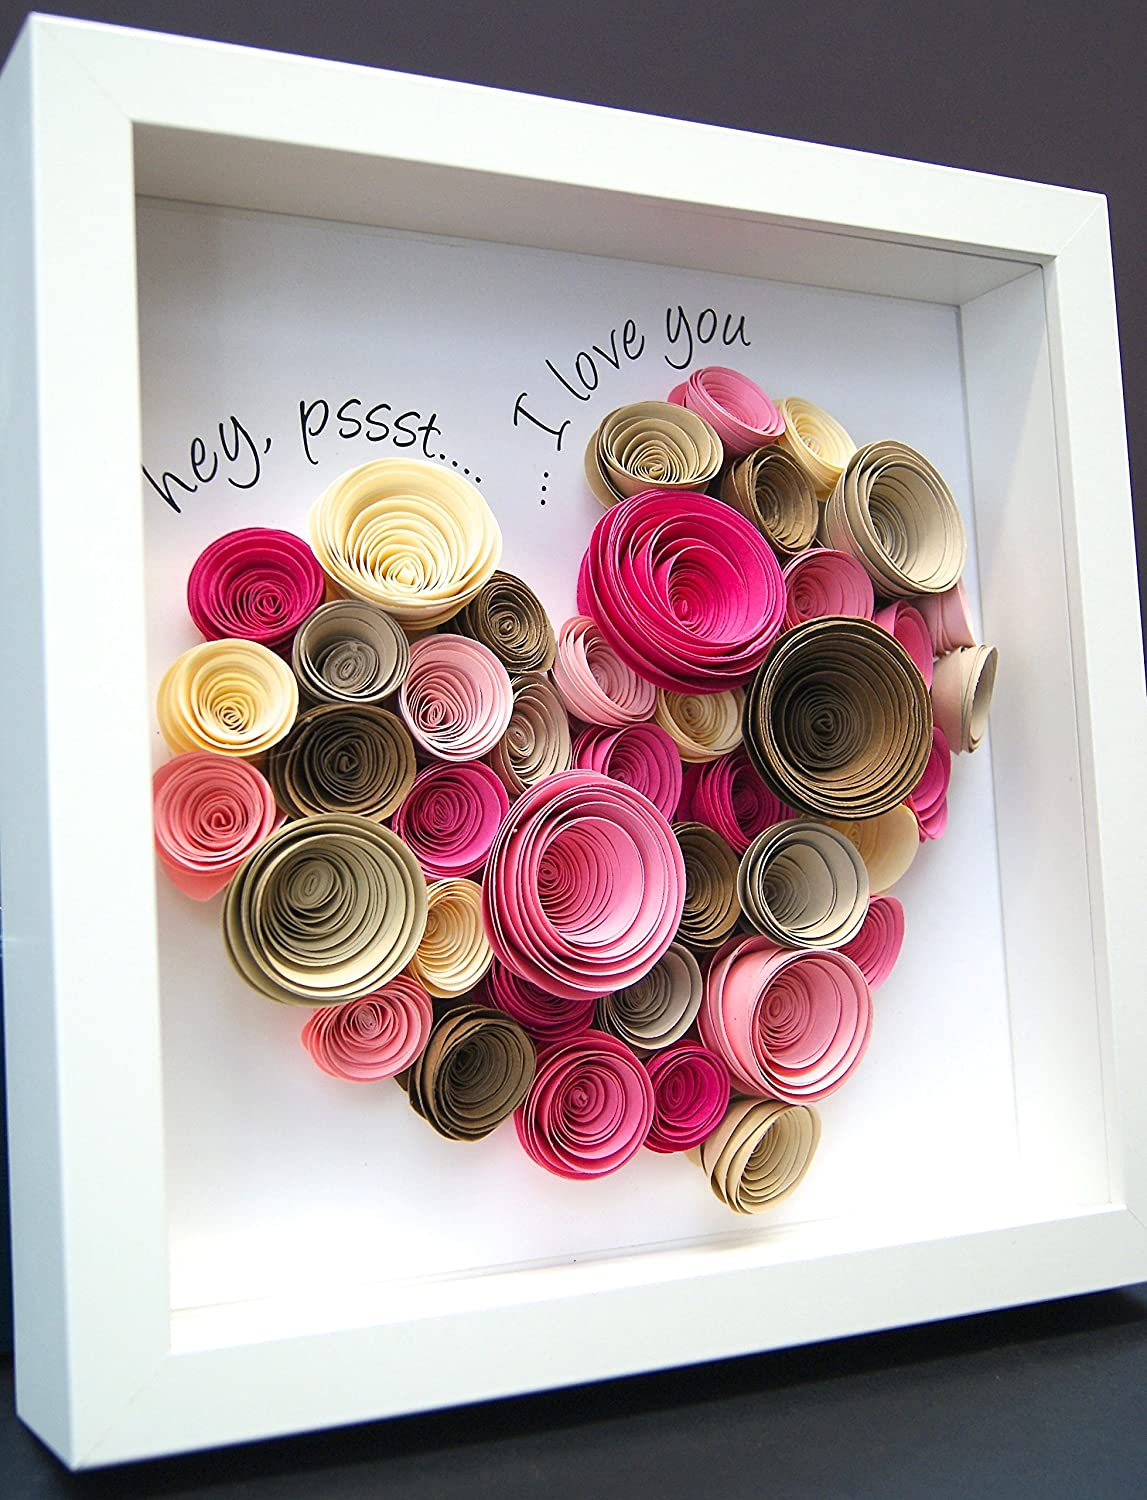 Personalized Paper Origami Shadowbox Frame of Large Heart made up of Paper Roses for Wedding Anniversary Valentine Engagement Custom Gift